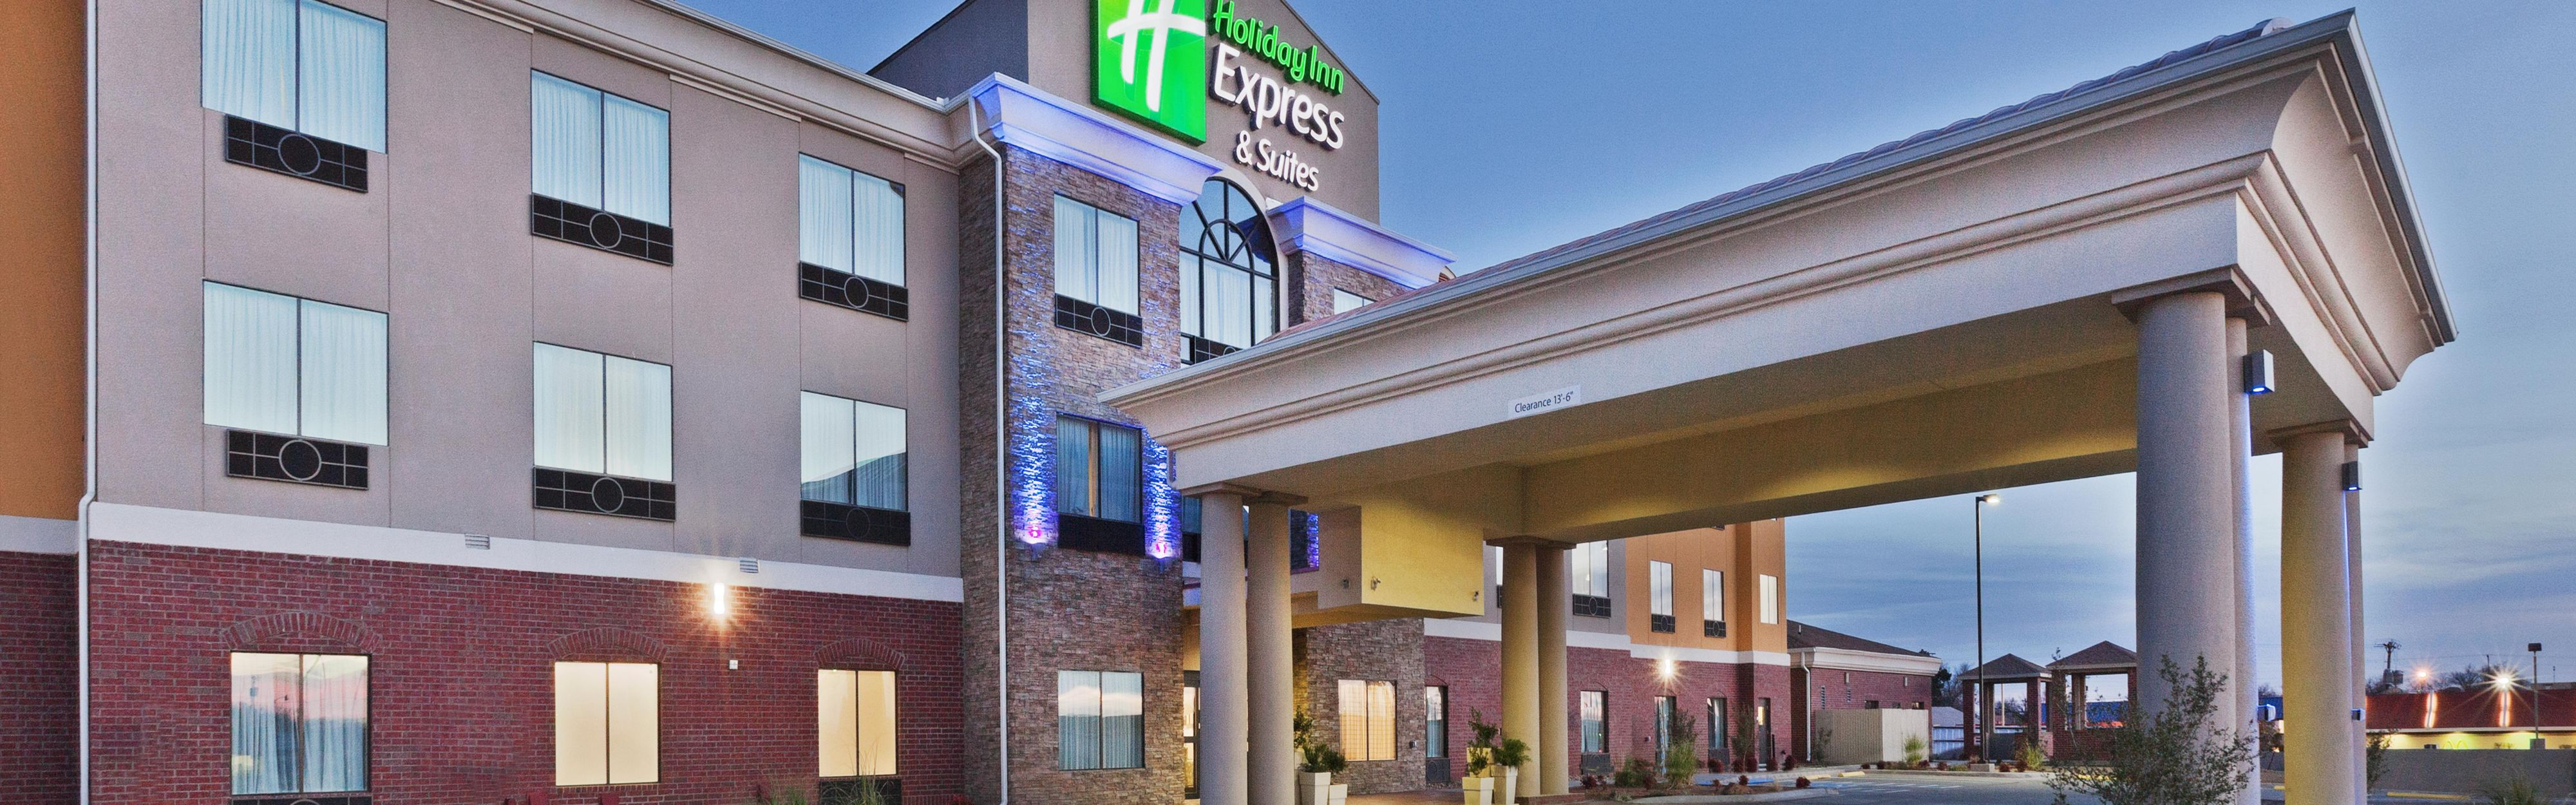 Holiday Inn Express & Suites Brownfield image 0